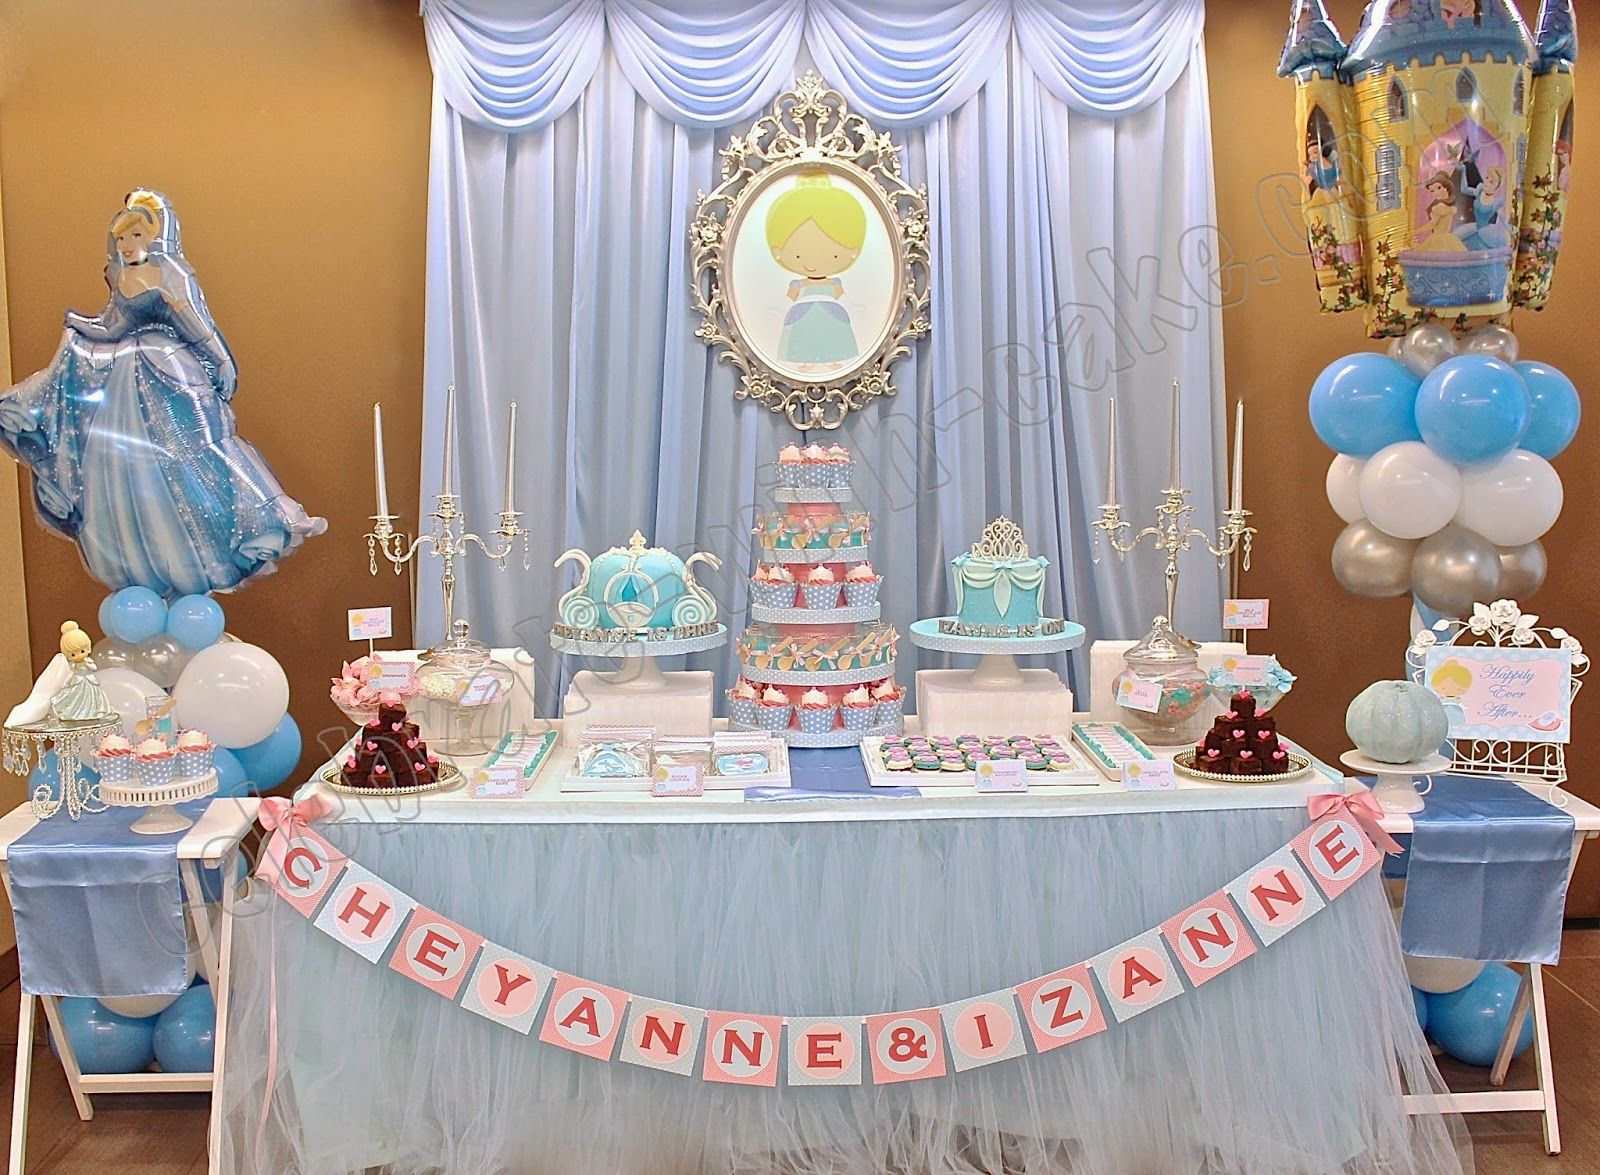 Cinderella Dessert Table Click Post To View More Pictures Cinderella Birthday Party Princess Theme Party Disney Princess Theme Party